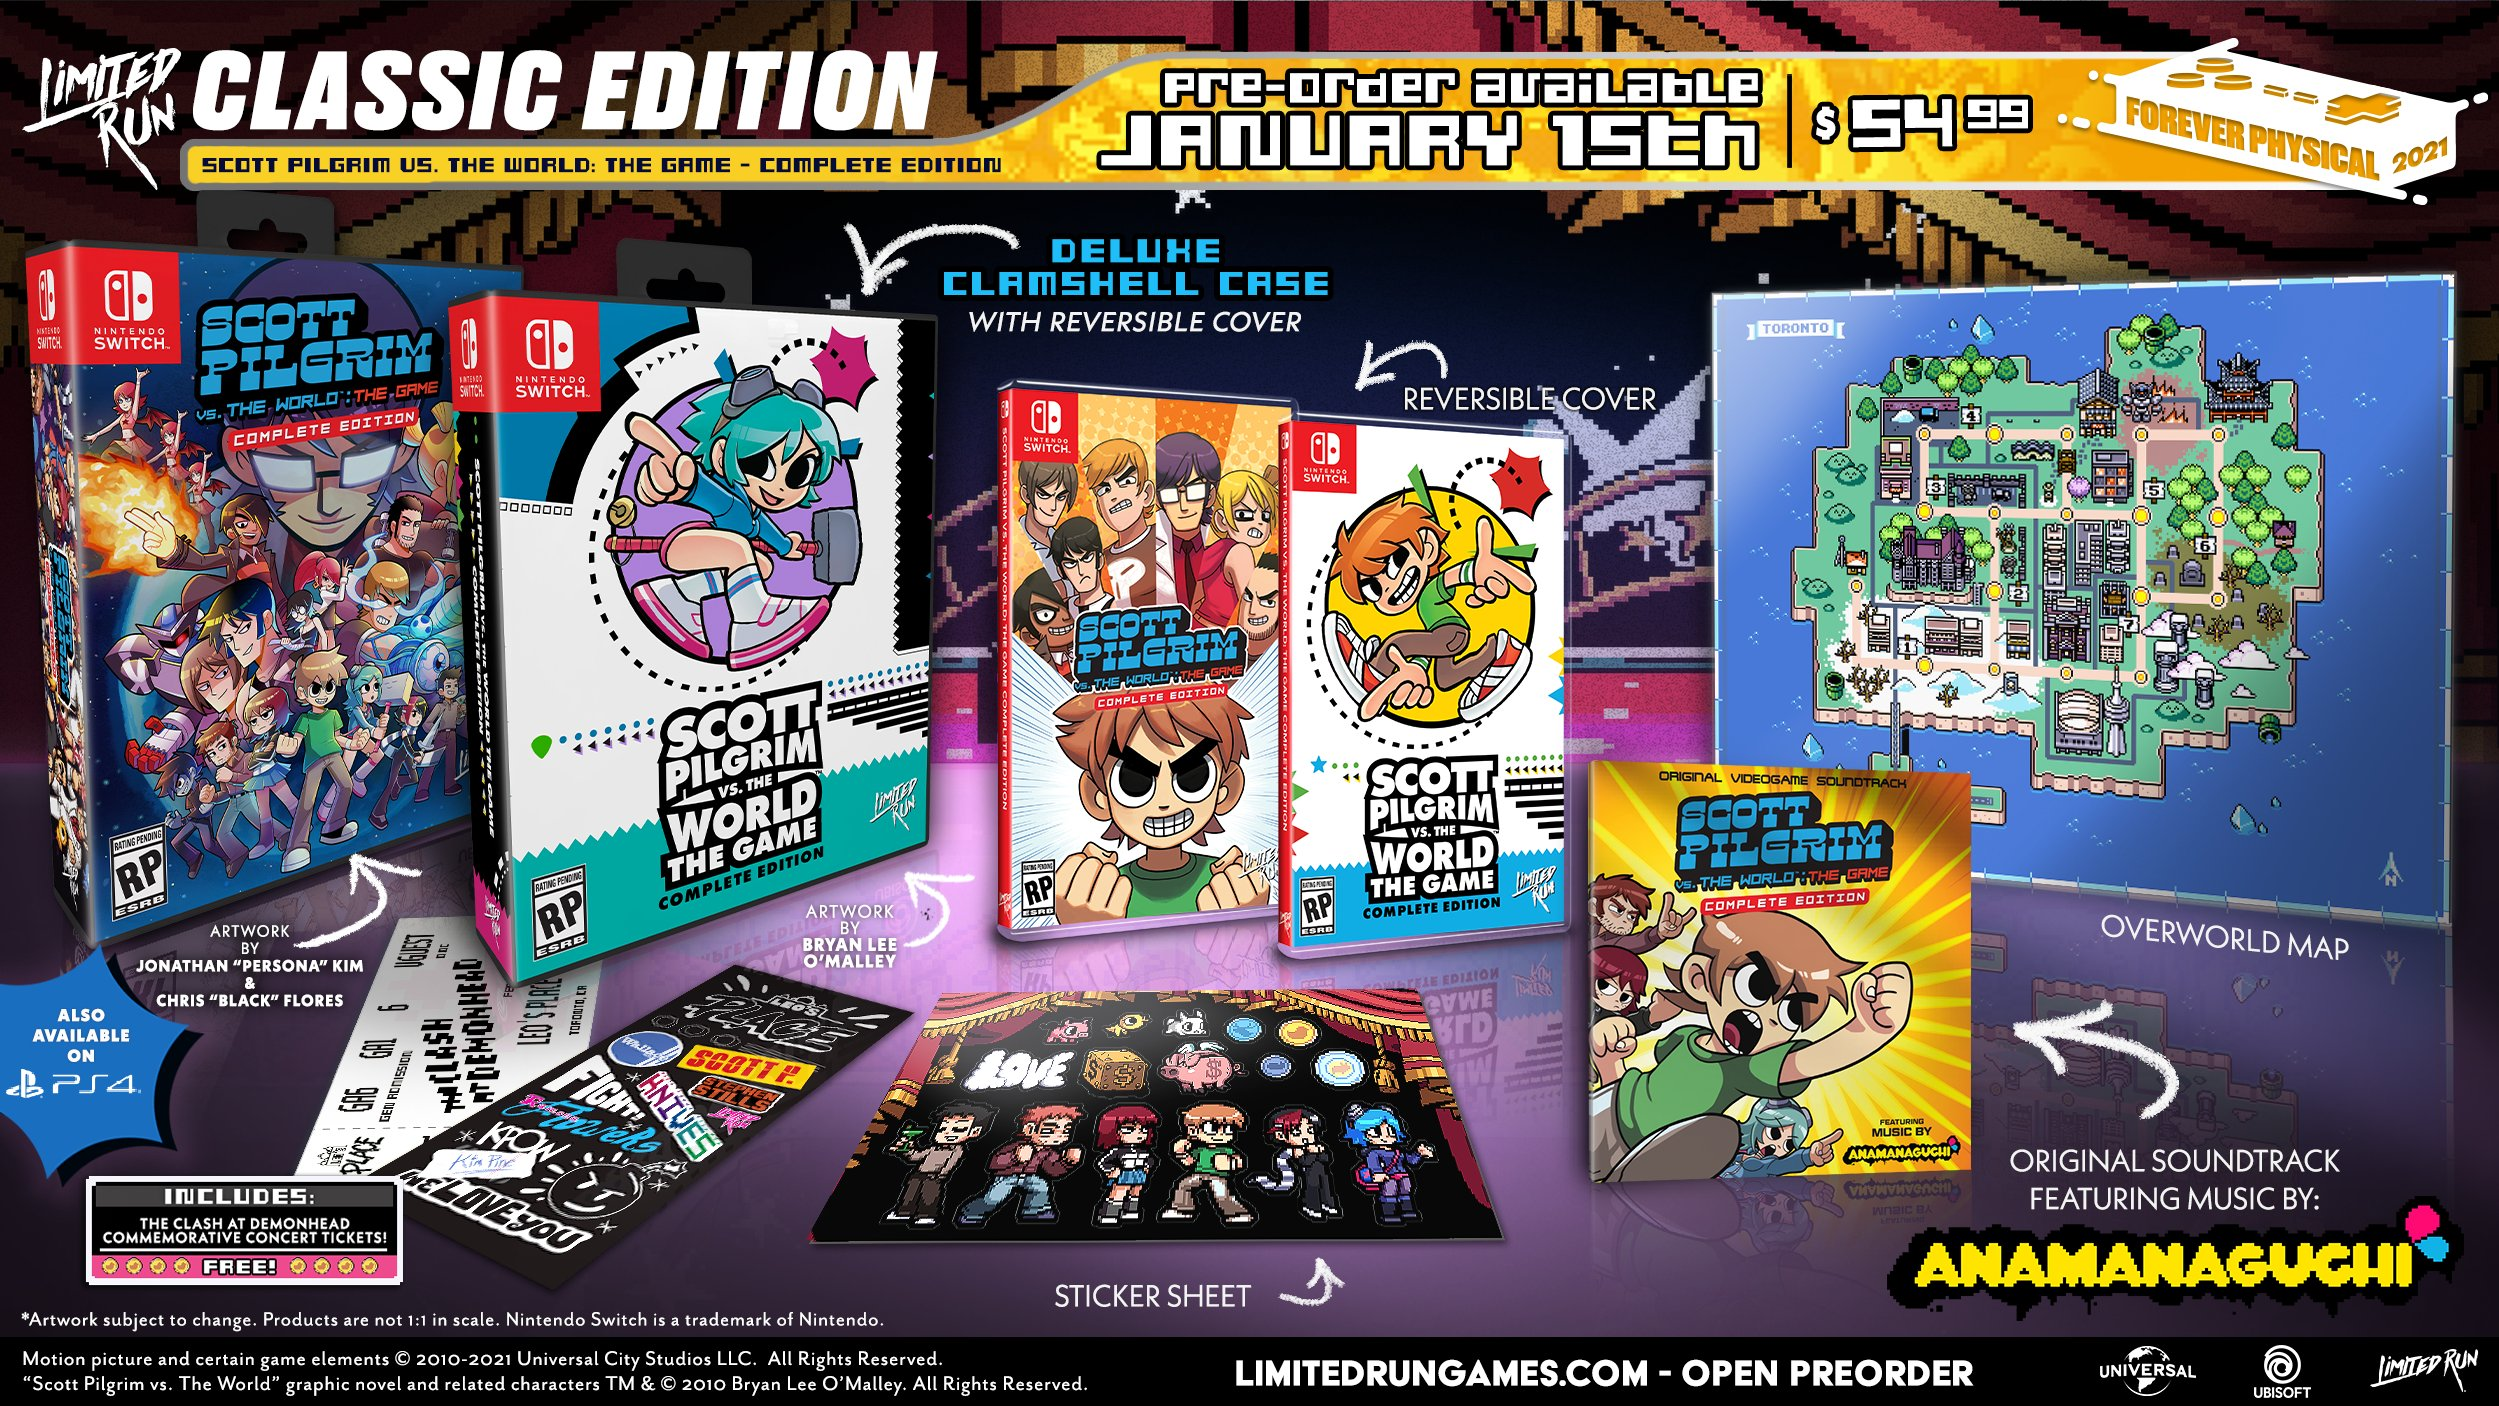 Scott Pilgrim Game Gets Physical Release From Limited Run!